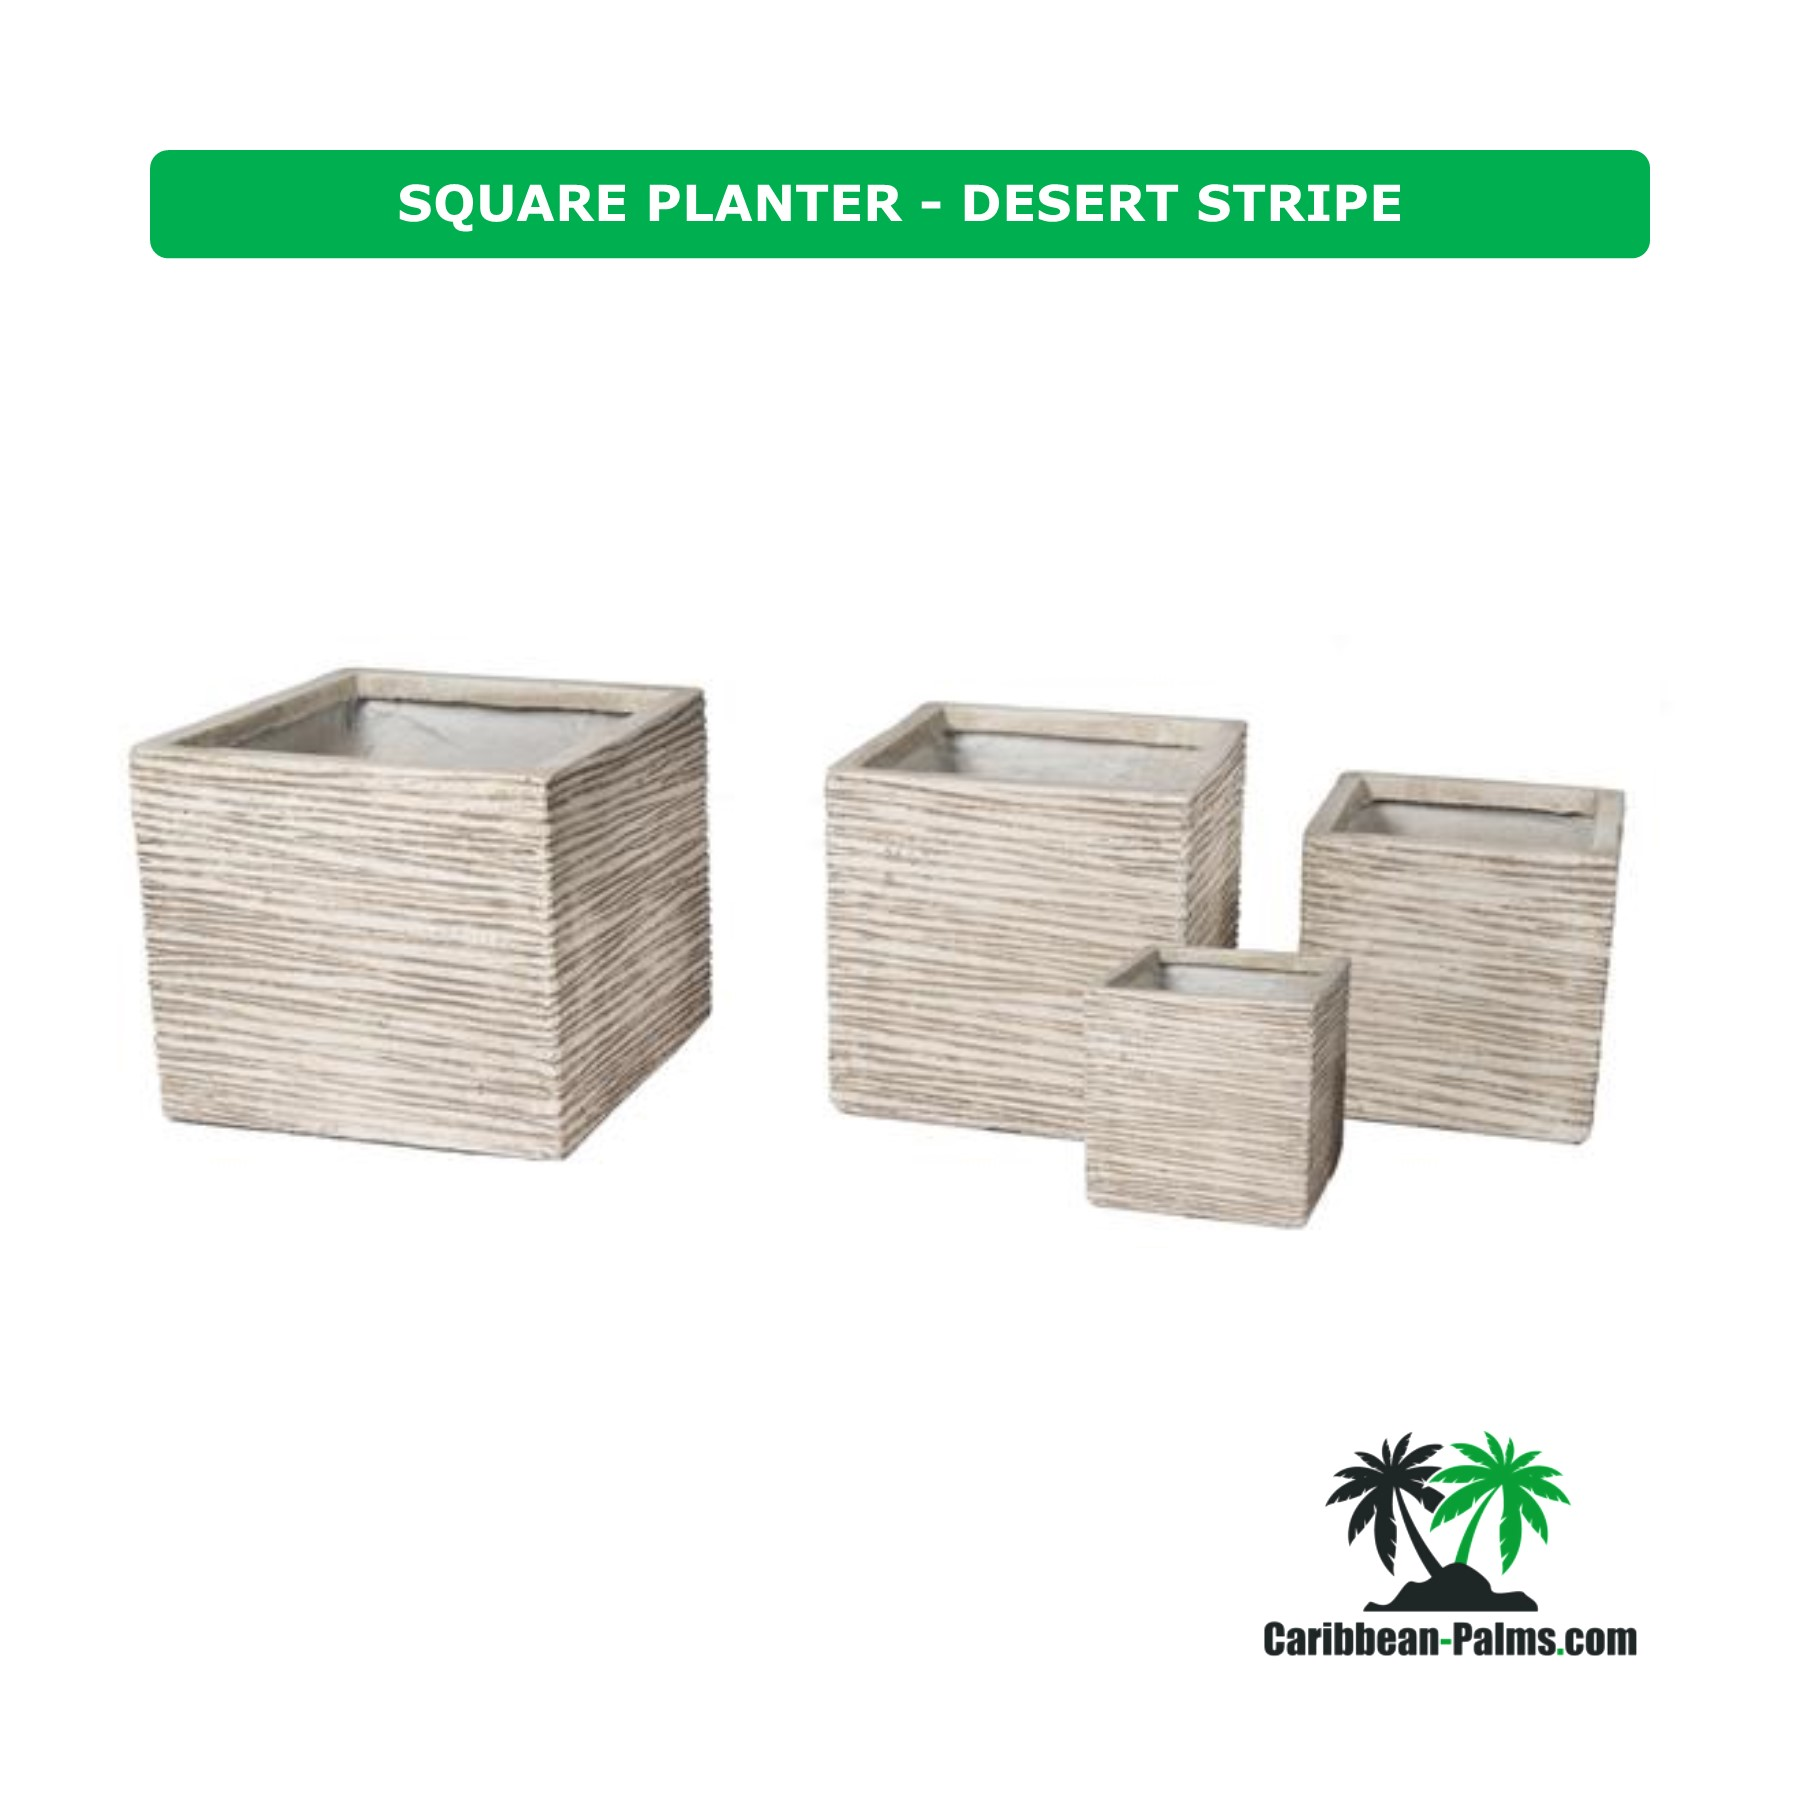 SQUARE PLANTER DESERT STRIPE